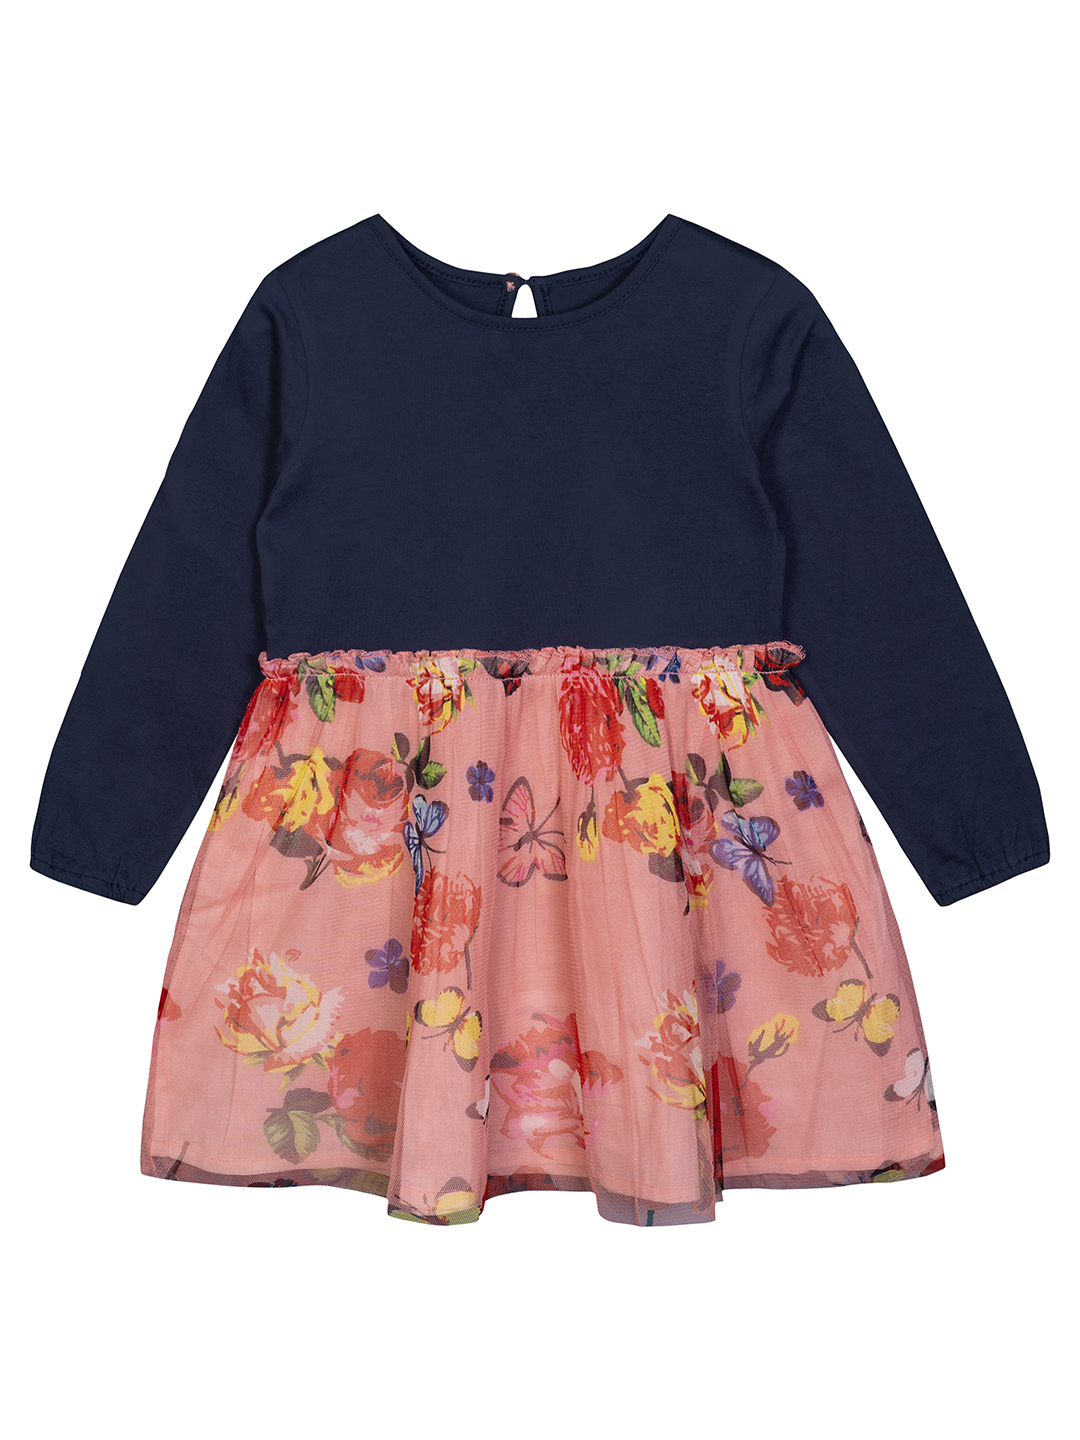 Budding Bees | Budding Bees Baby Girls Cotton Jersey With Net Floral Dress